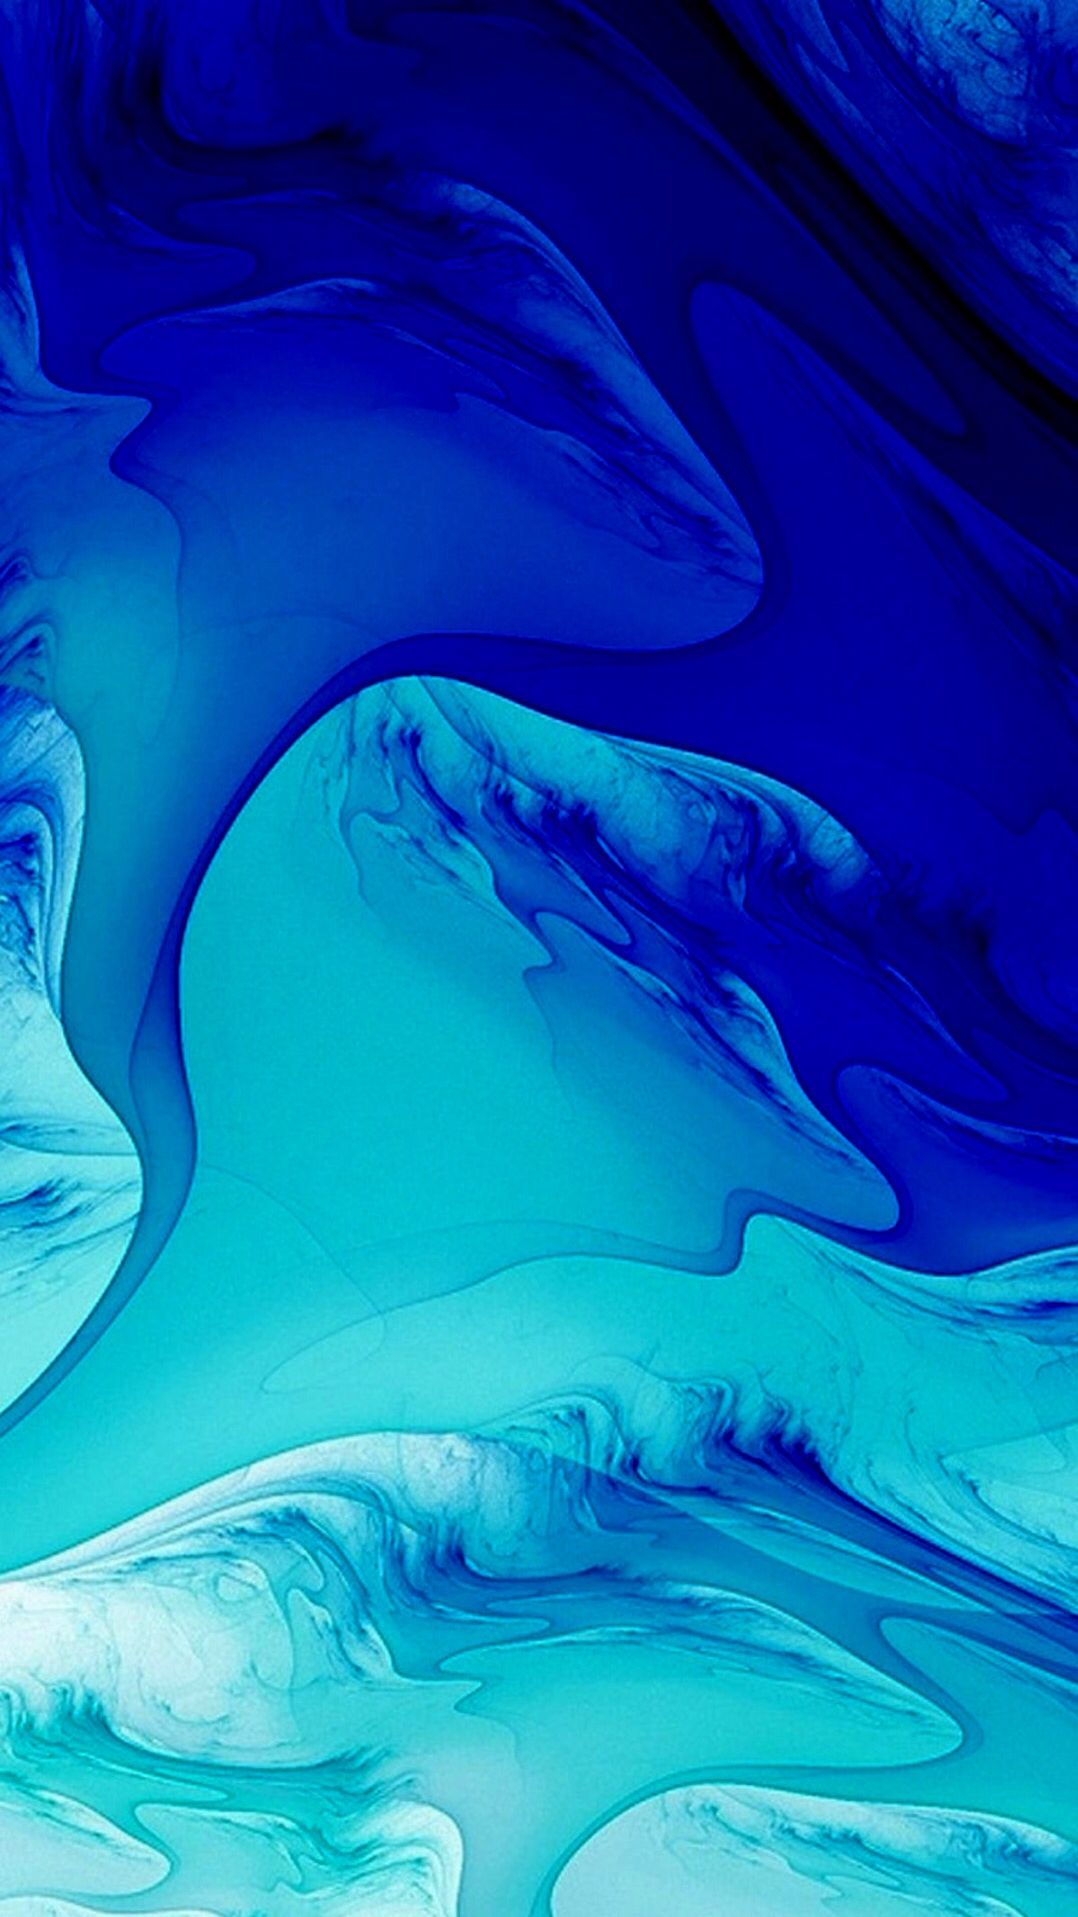 Pin By Lore On Colors Blue Abstract Iphone Wallpaper Blue Wallpaper Iphone Huawei Wallpapers